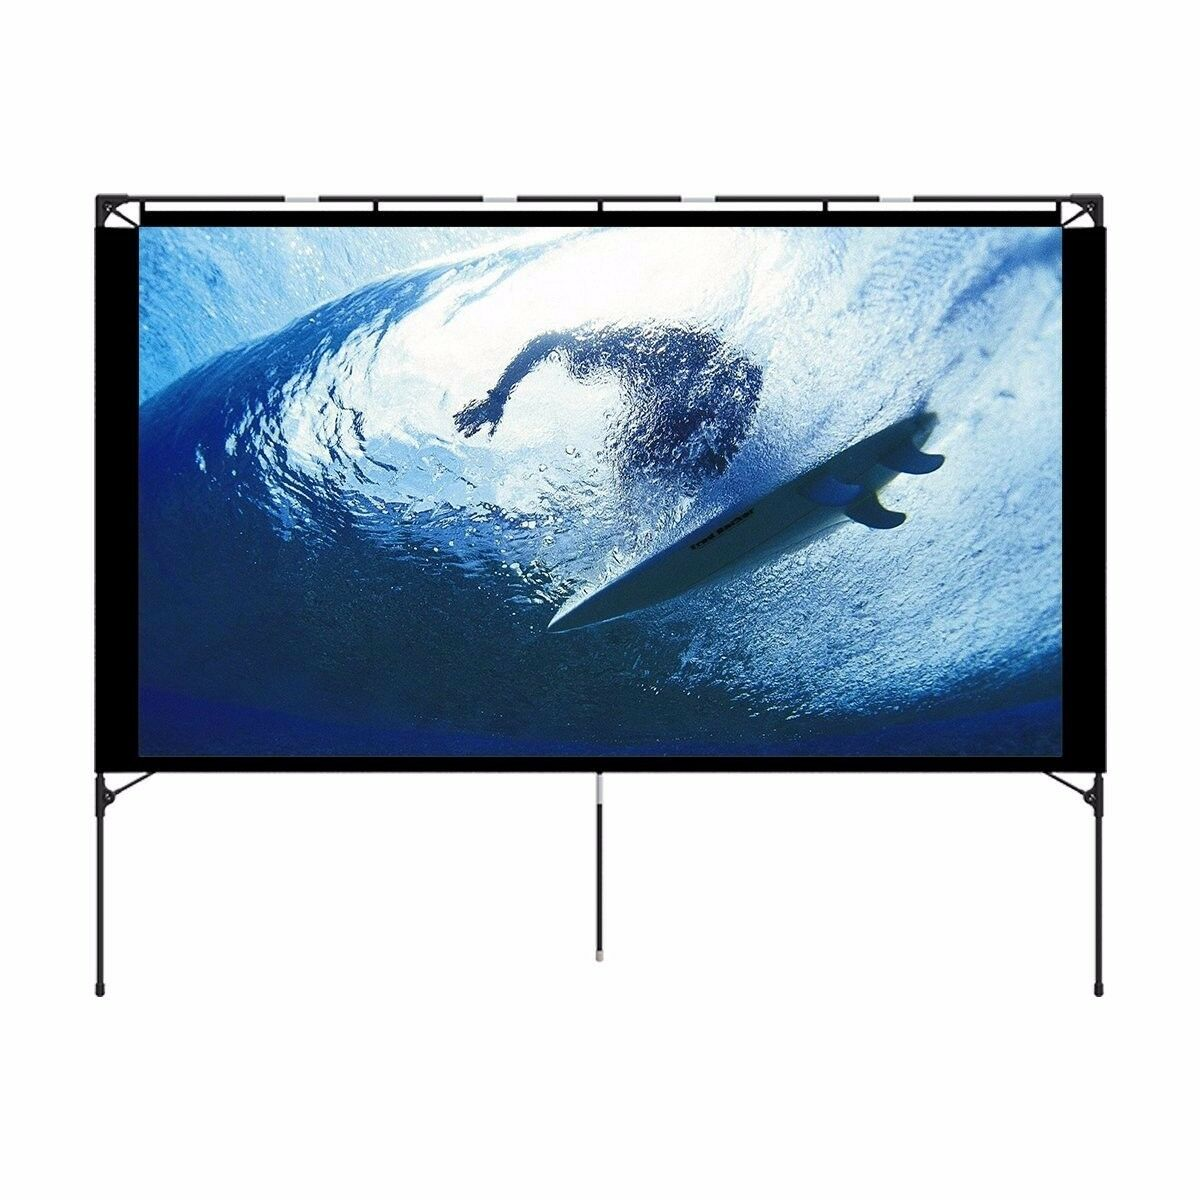 Outdoor Projection Screen - Foldable Portable Outdoor Front